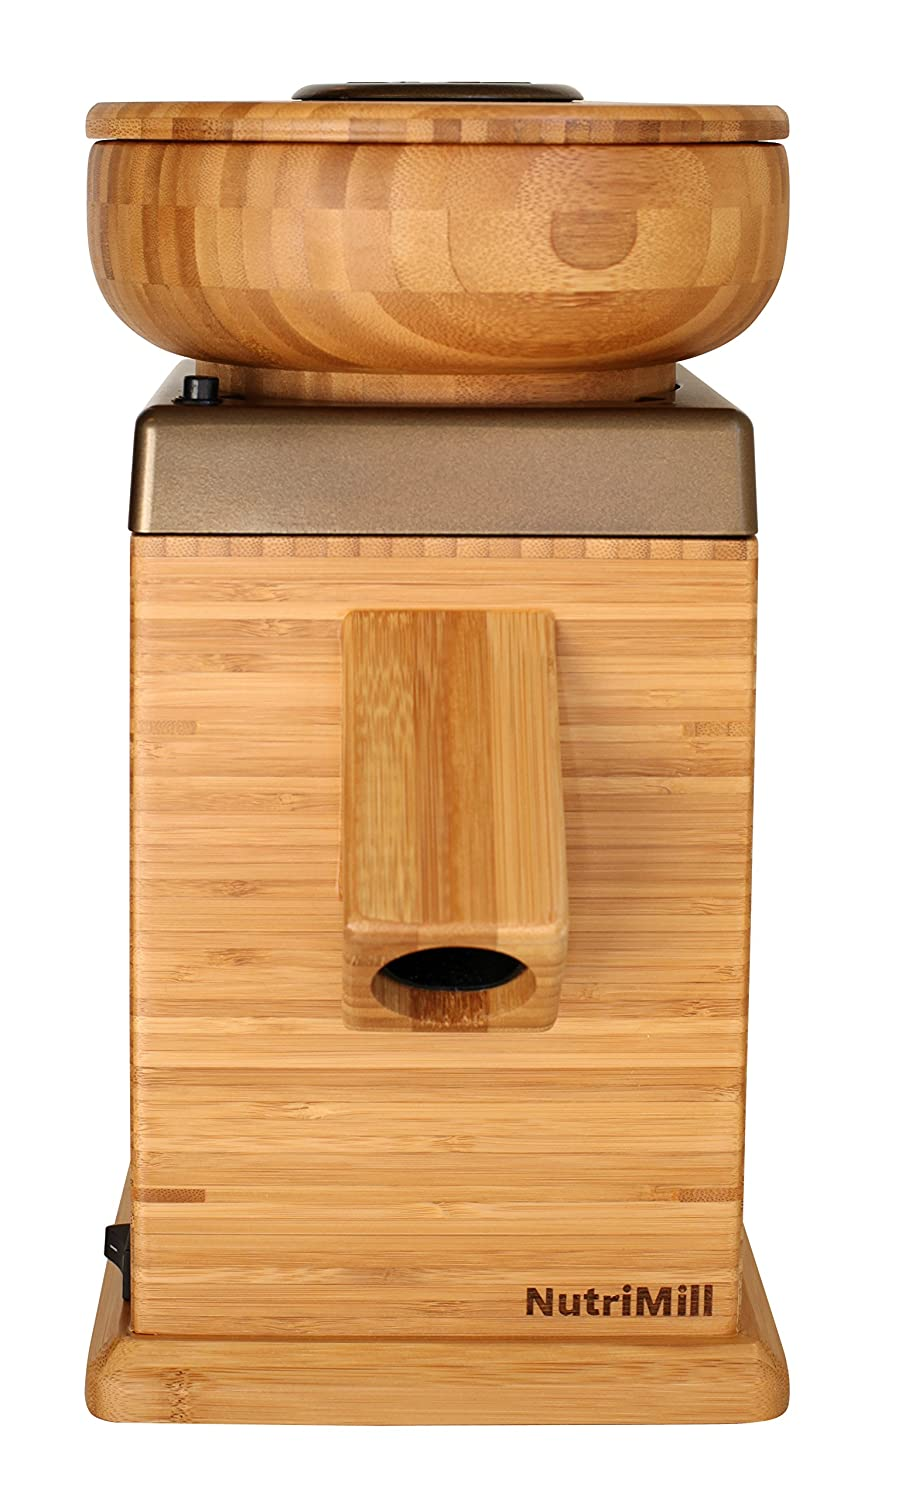 NutriMill Harvest Stone Grain Mill, 450 Watt – Gold